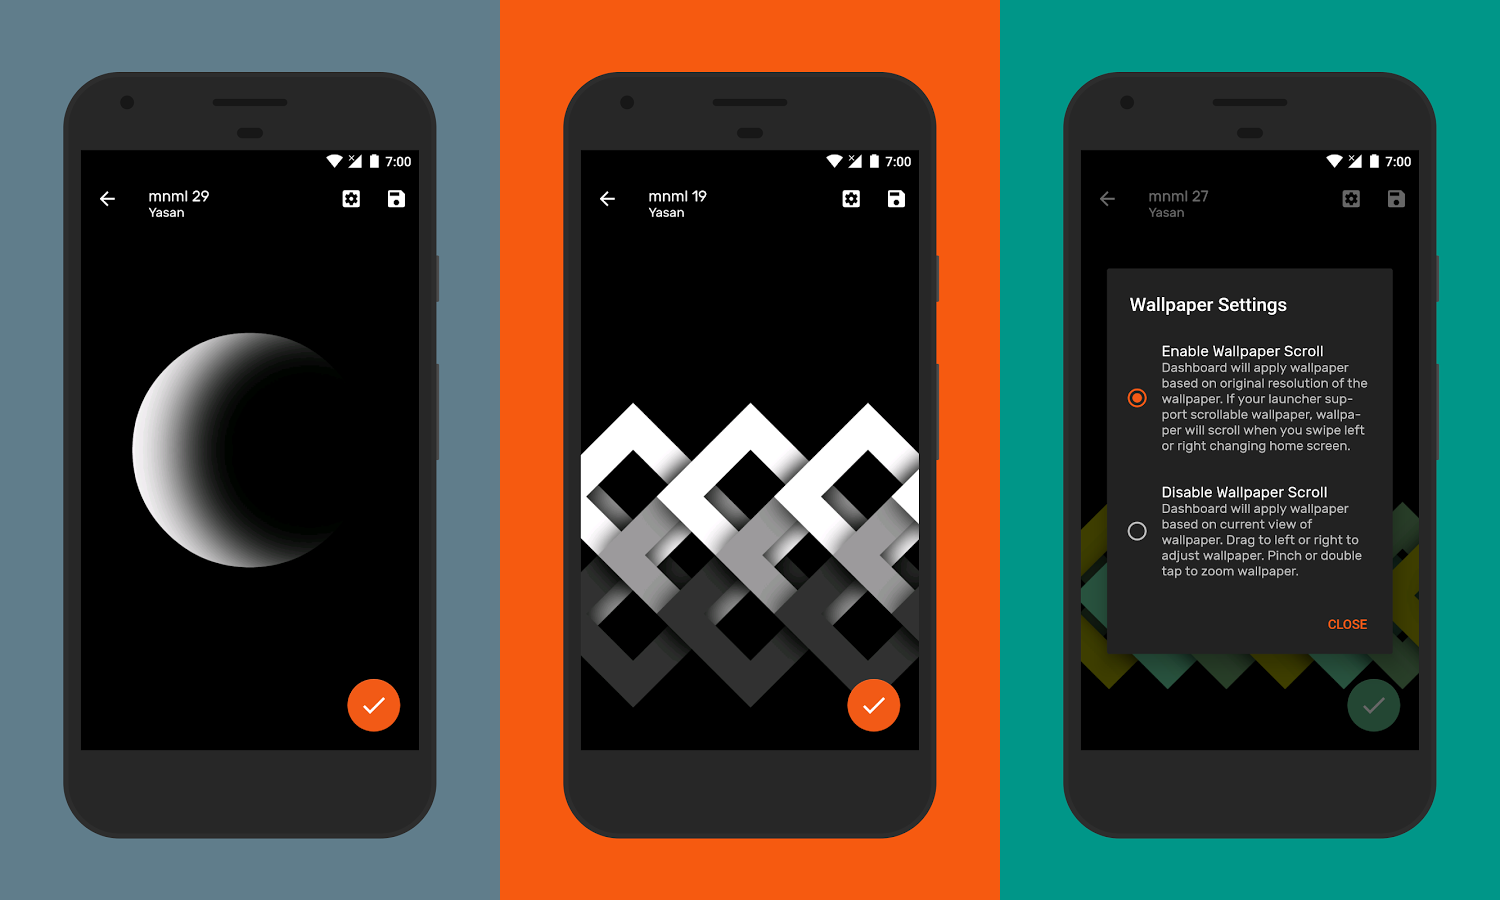 AMOLED Mnml Is An Open Source Cloud Based Wallpaper App With Lots Of Minimalistic Wallpapers Designed For Displays